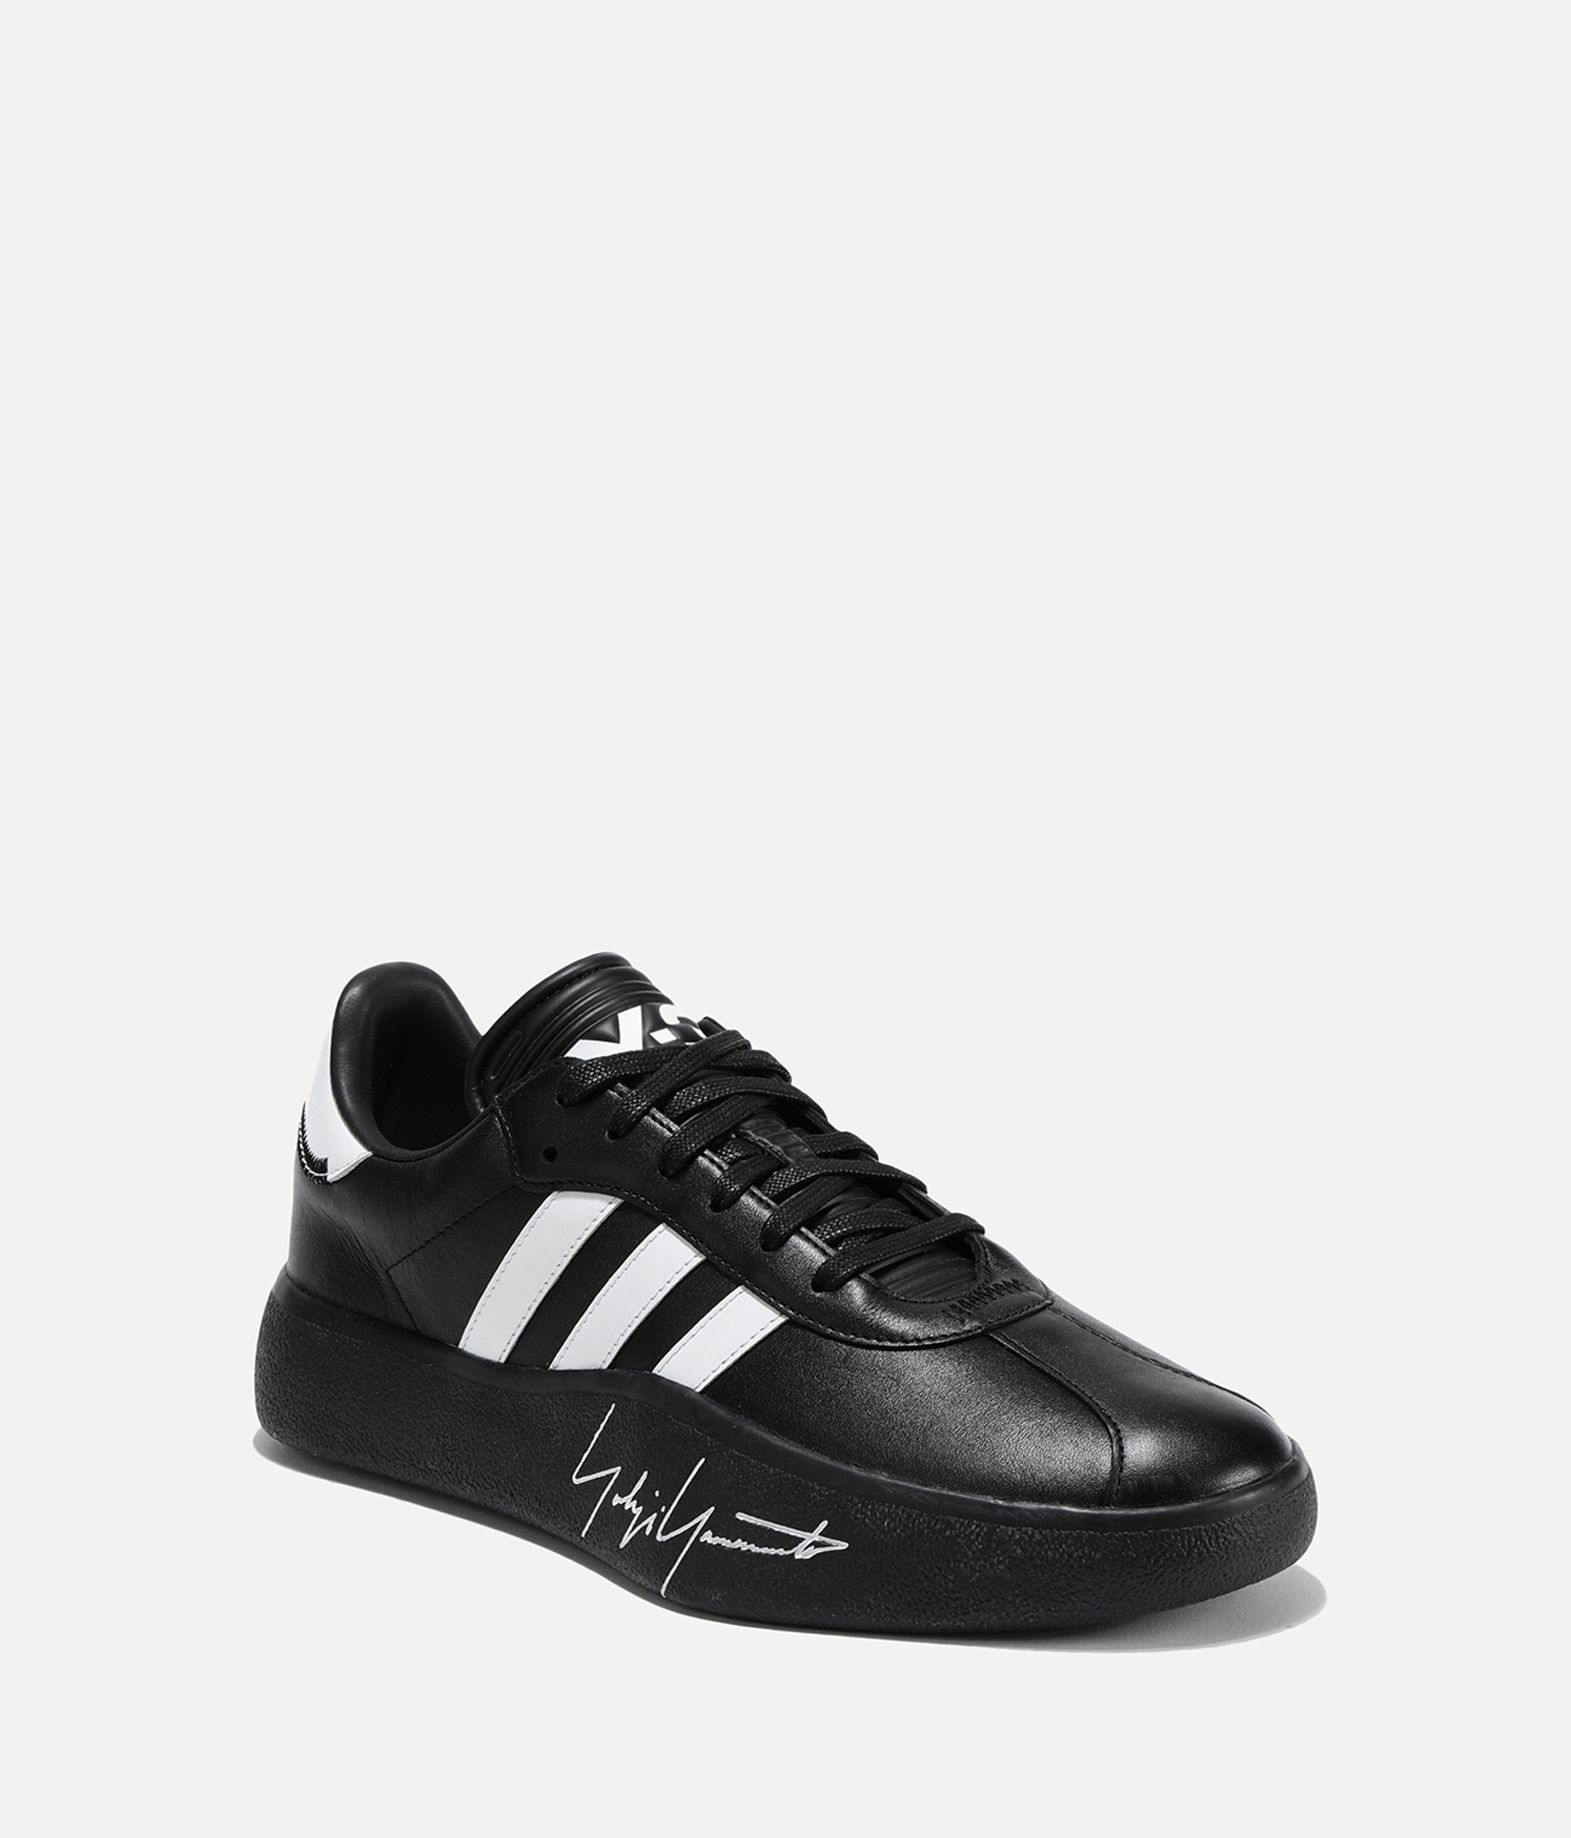 Y-3 Y-3 Tangutsu Football スニーカー メンズ e